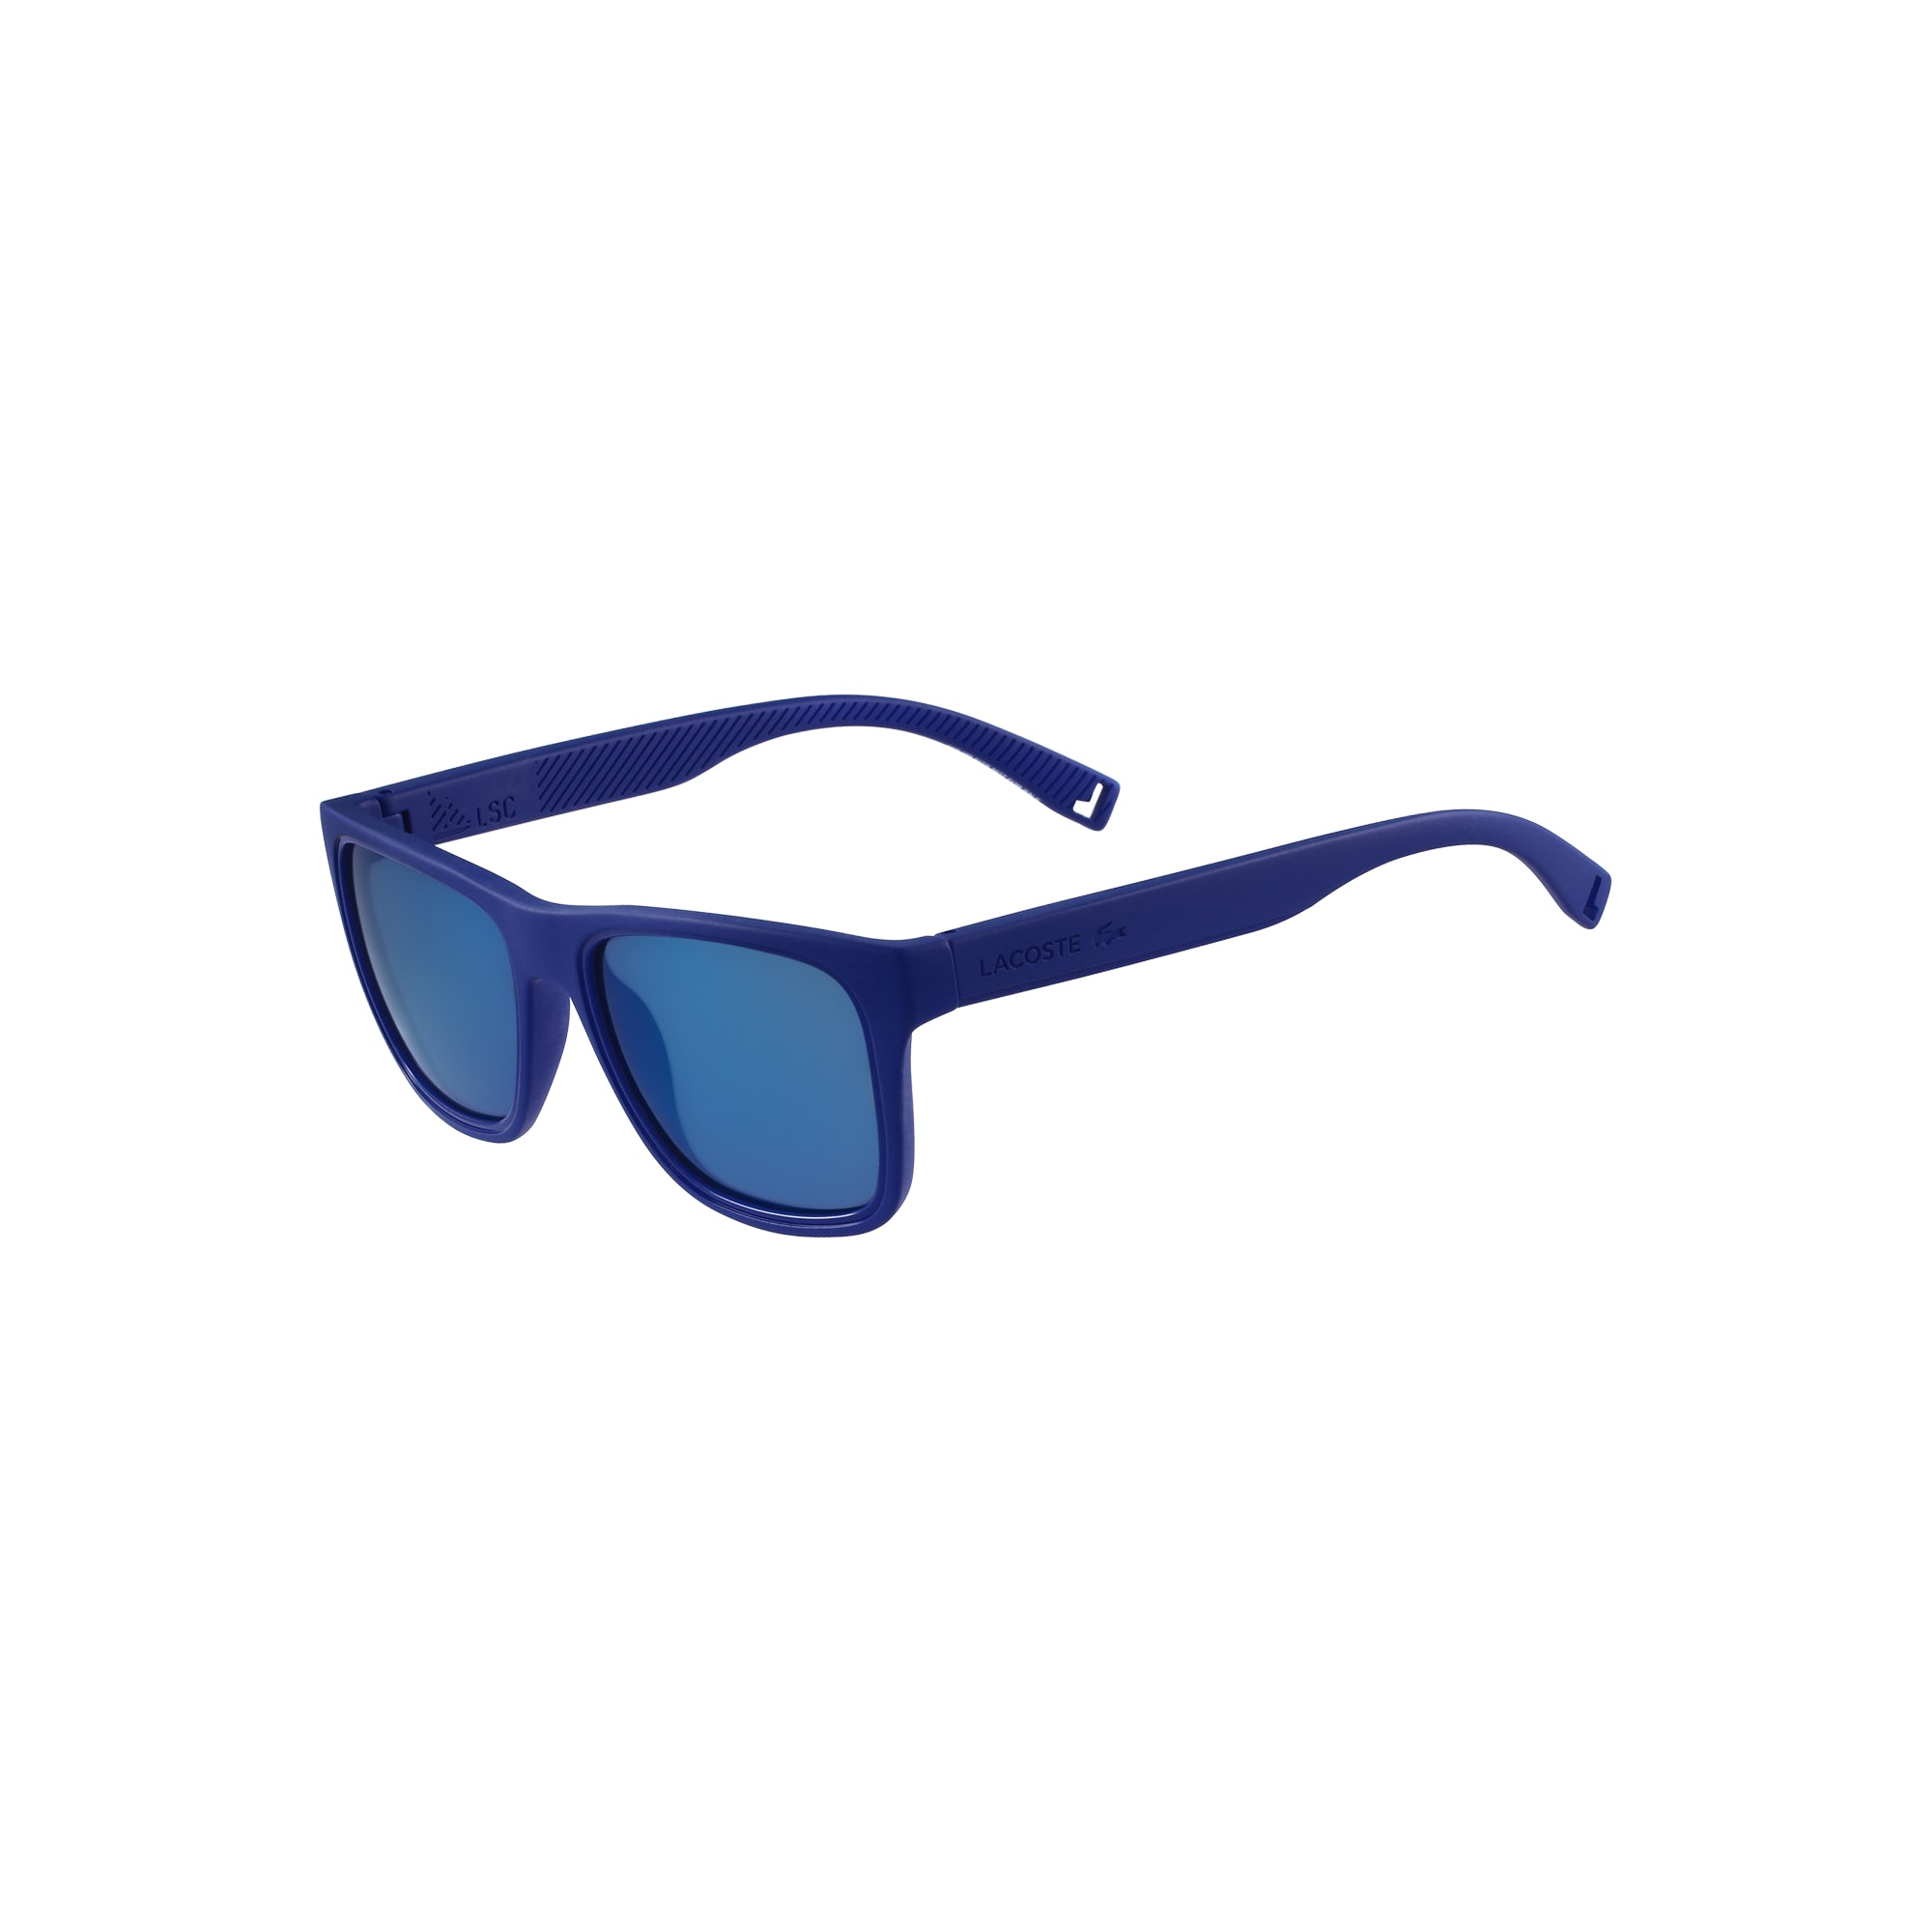 라코스테 선글라스 Lacoste Mens Floatable Color Block Sunglasses,blue